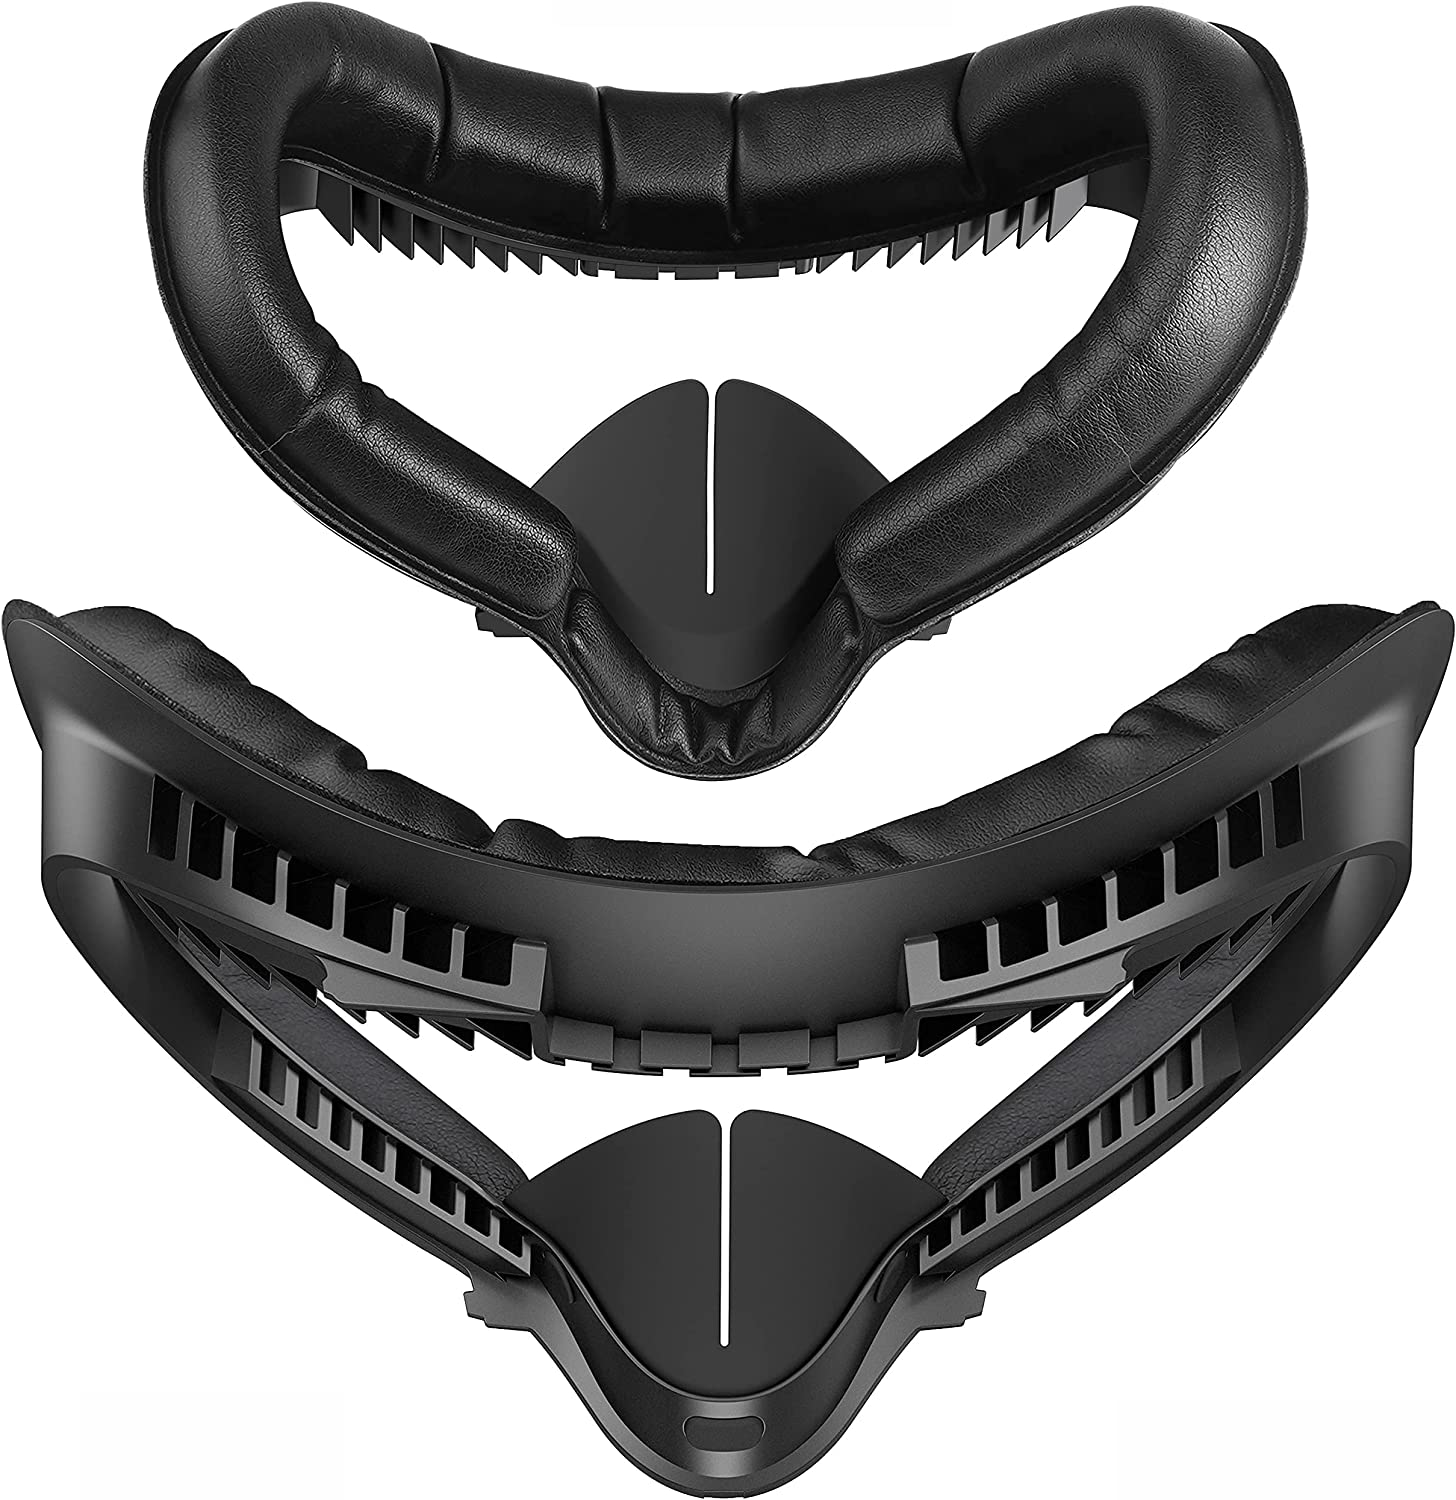 KIWI design Facial Interface for Oculus Quest 2, Upgraded Foam Pad Replacement Accessories